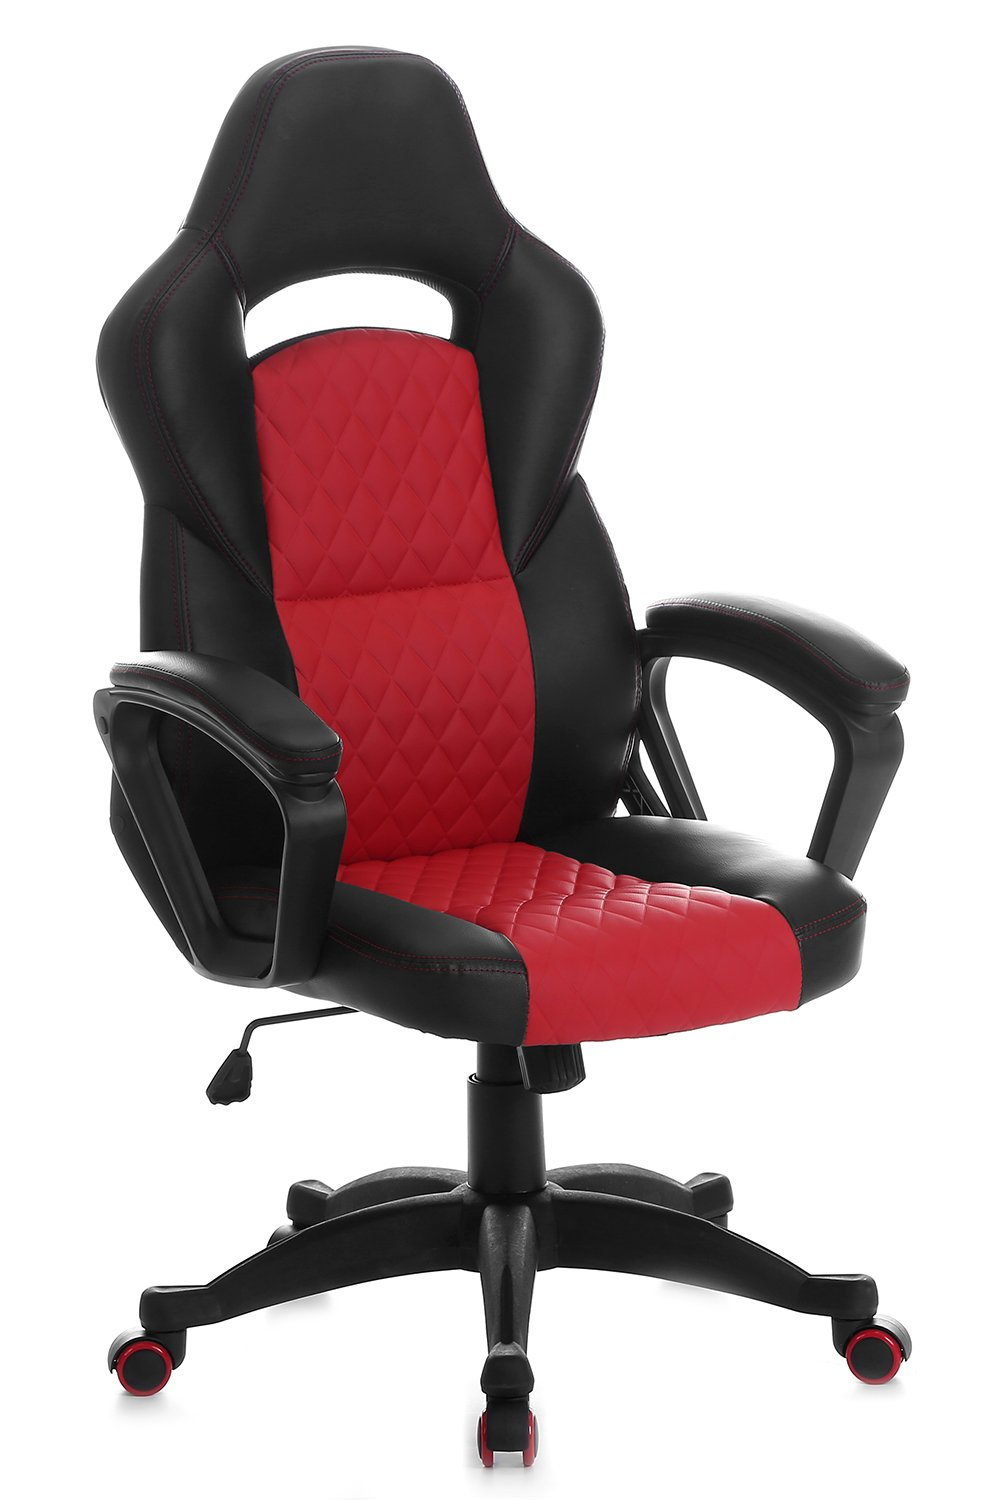 Executive Office Chair Swivel Bucket Racing Sport Seat different colors black//red